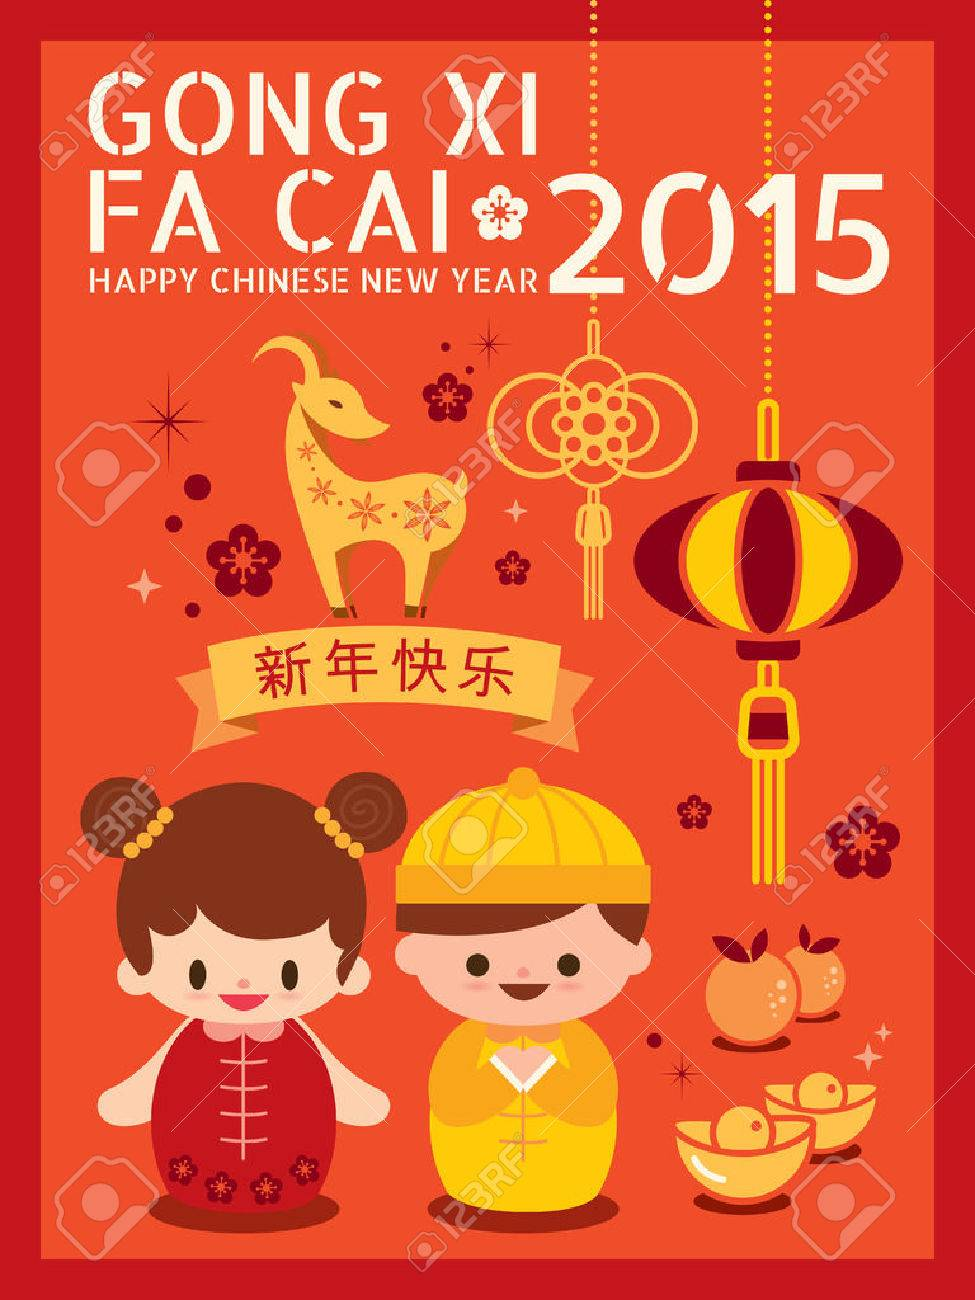 chinese new year of the goat 2015 design elements with chinese new year of the goat 2015 design elements with gong xi fa cai greeting